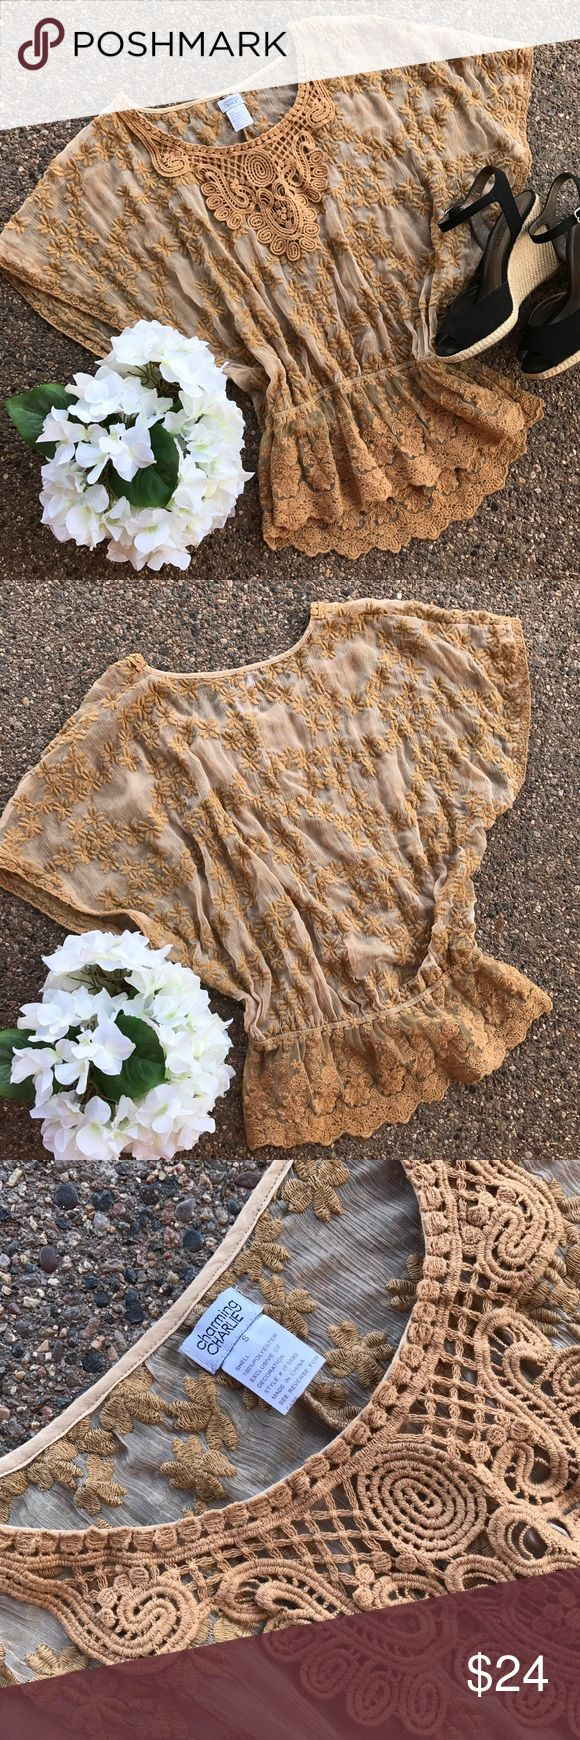 Gold/Brown Lace Blouse - Beautiful🍁Casual Friday! Golden Brown Lace Blouse, I always wear MEDIUMS and this fits me perfectly!!  Sheer lace...add a cami underneath, beautiful detail.... gathers at waist, so pretty!  Looks great with dark jeans!  BEAUTIFUL ON!!! Charming Charlie Tops Blouses